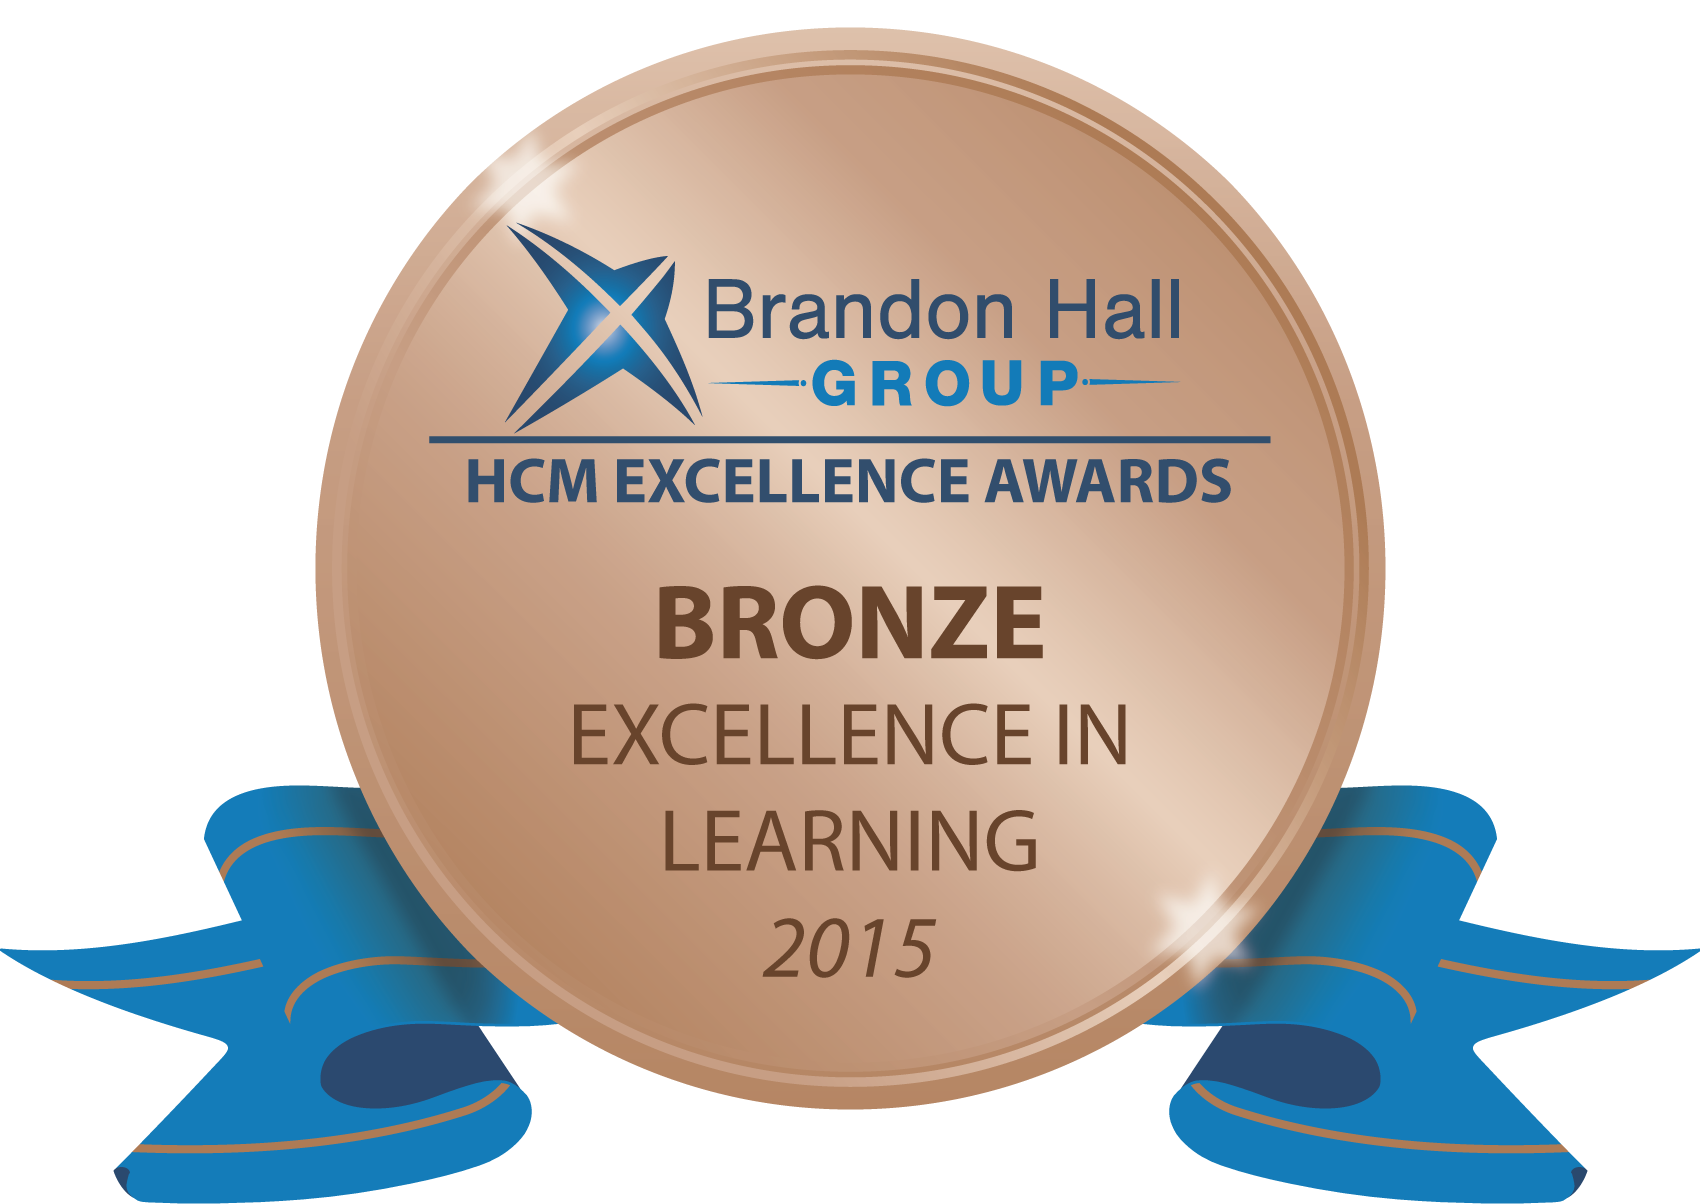 Bronze-Learning-Award-2015